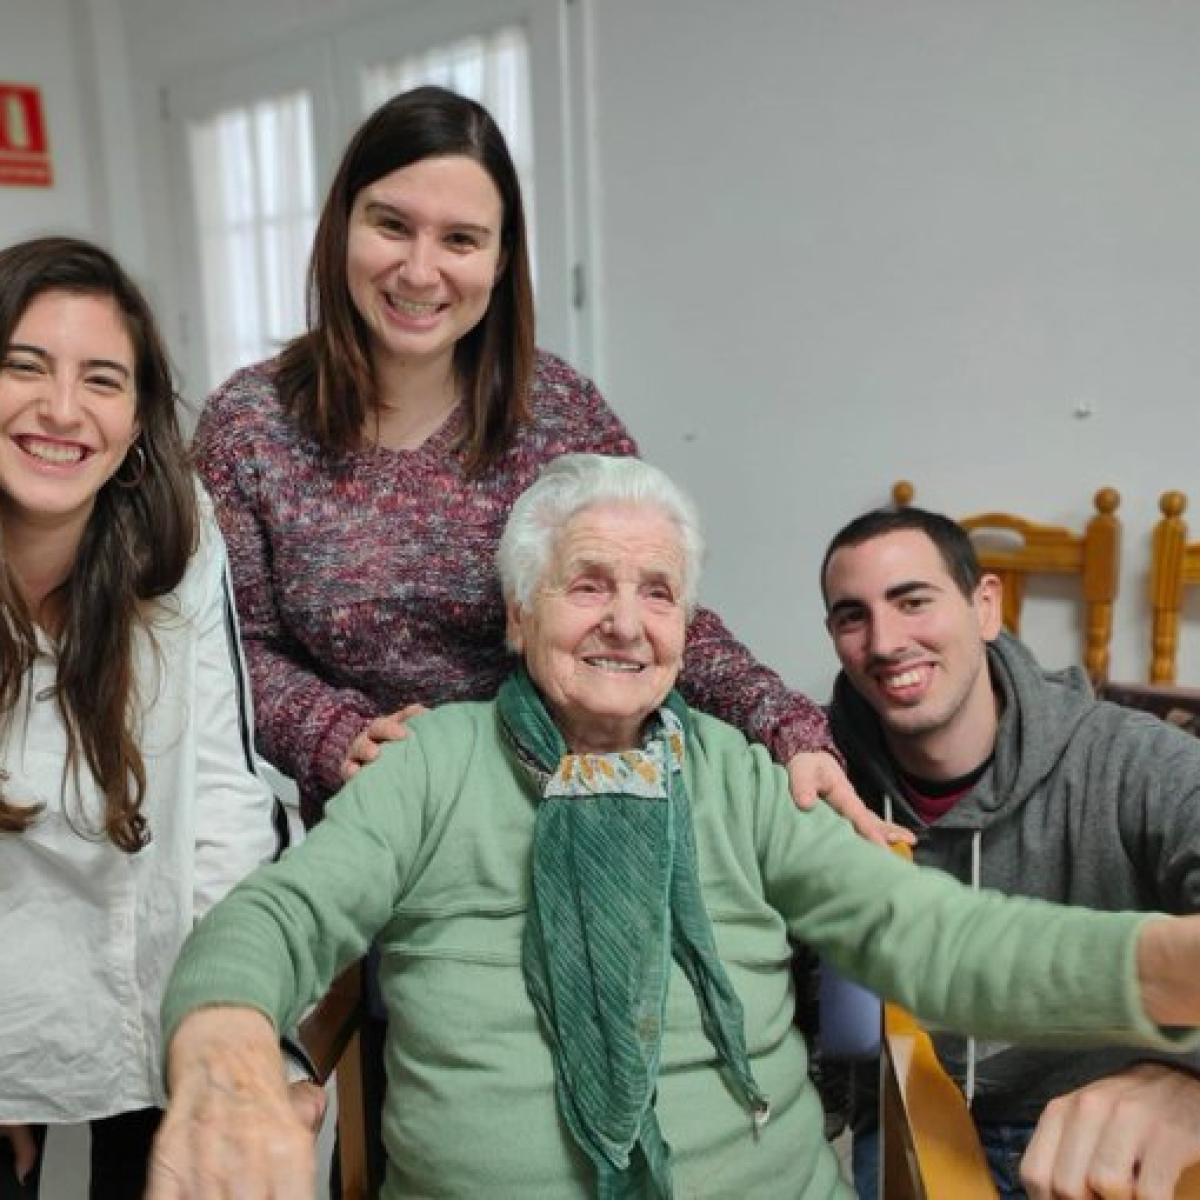 This 107-year-old proves age is just a number: She survived Spanish Flu in 1918, now she beat COVID-19